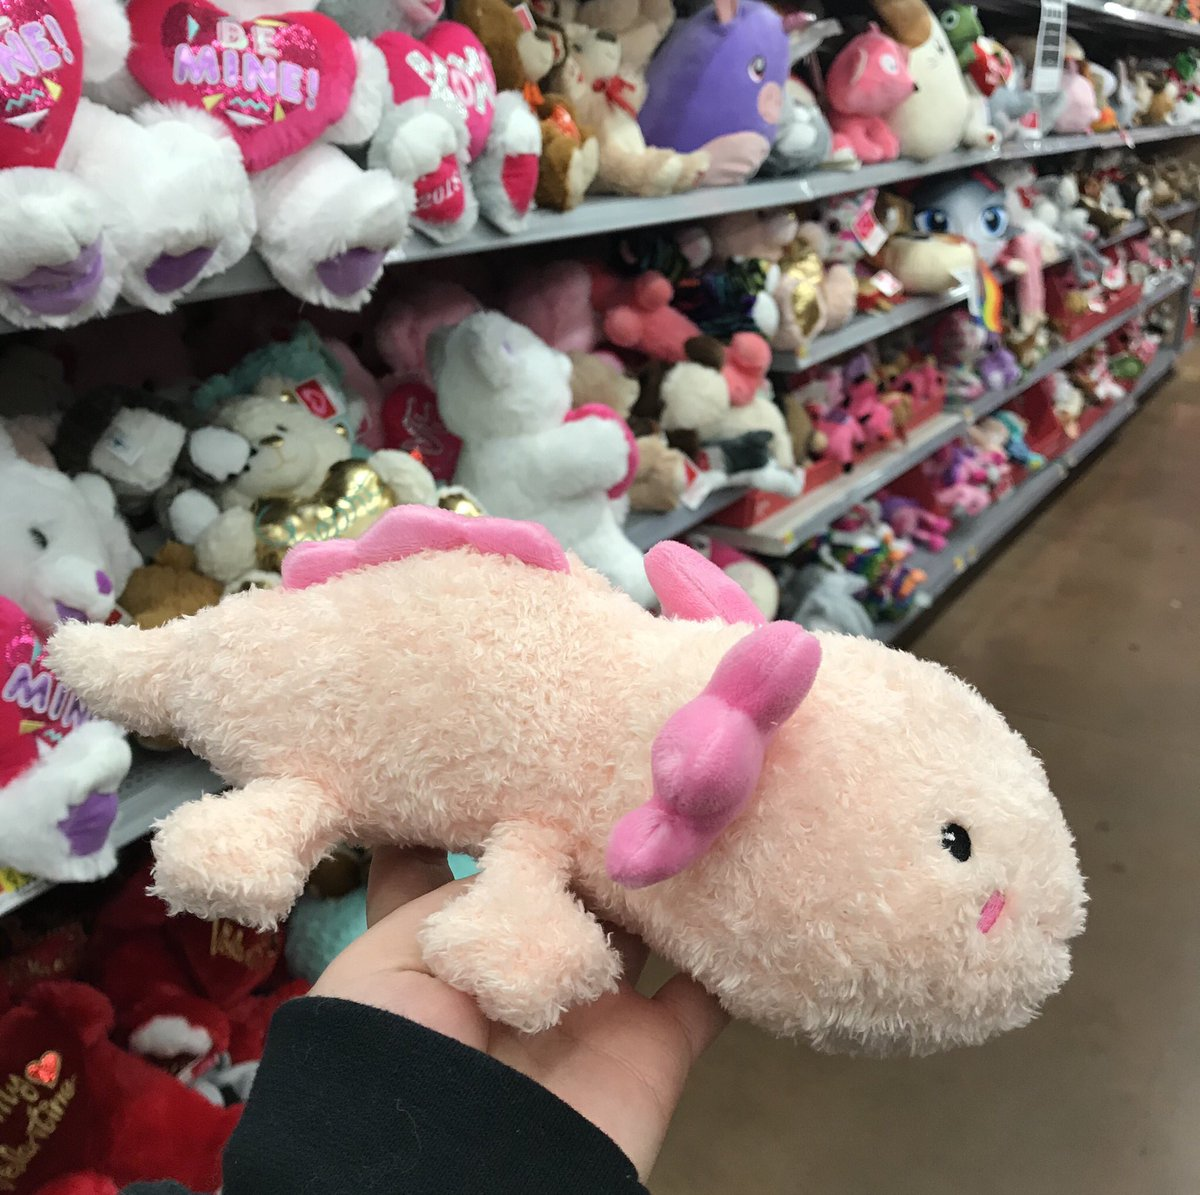 Walmart On Twitter Woohoo Can T Be That Cuteness Pia